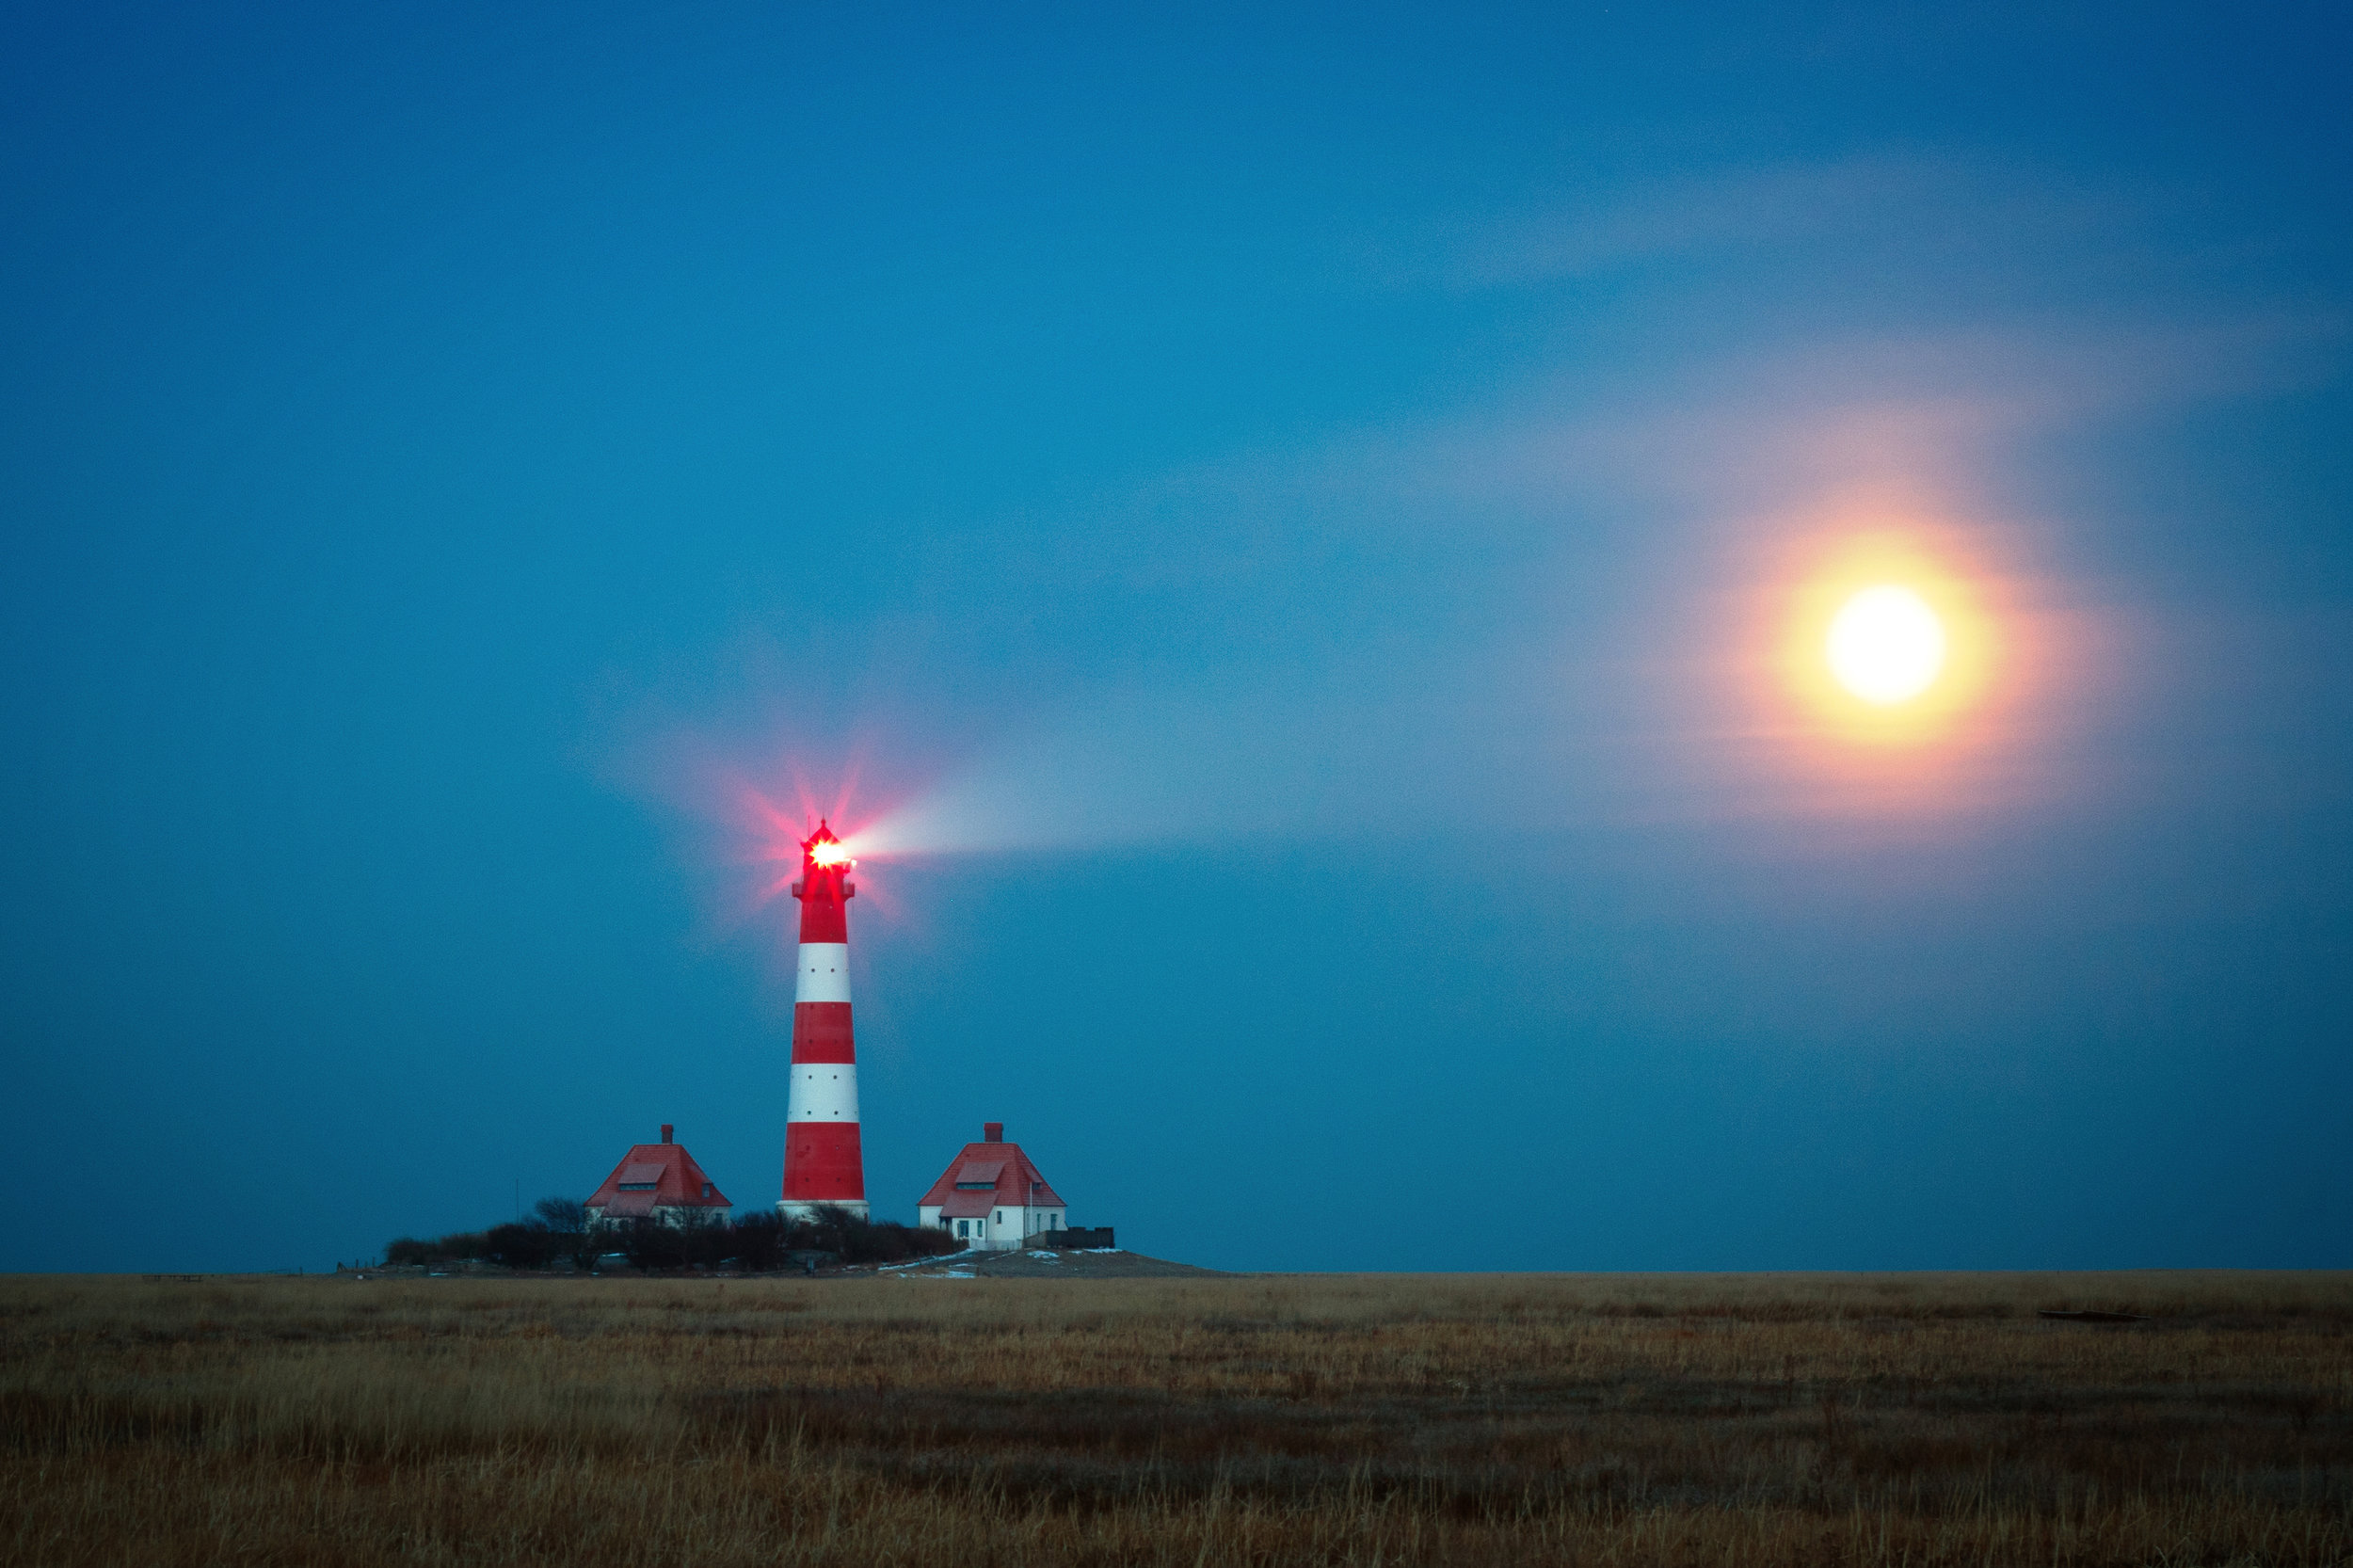 lighthouse-1334925.jpg